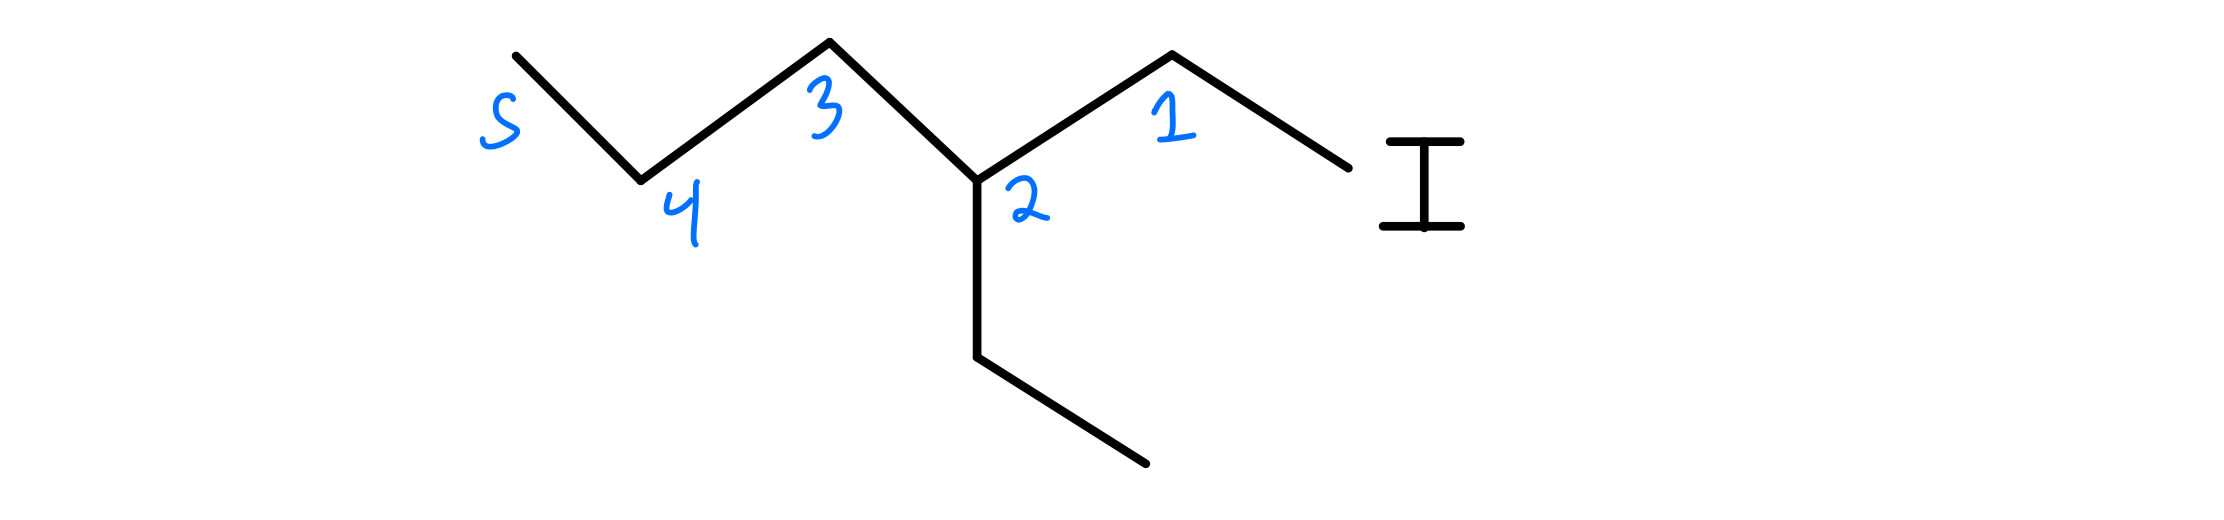 Alkyl halide nomenclature